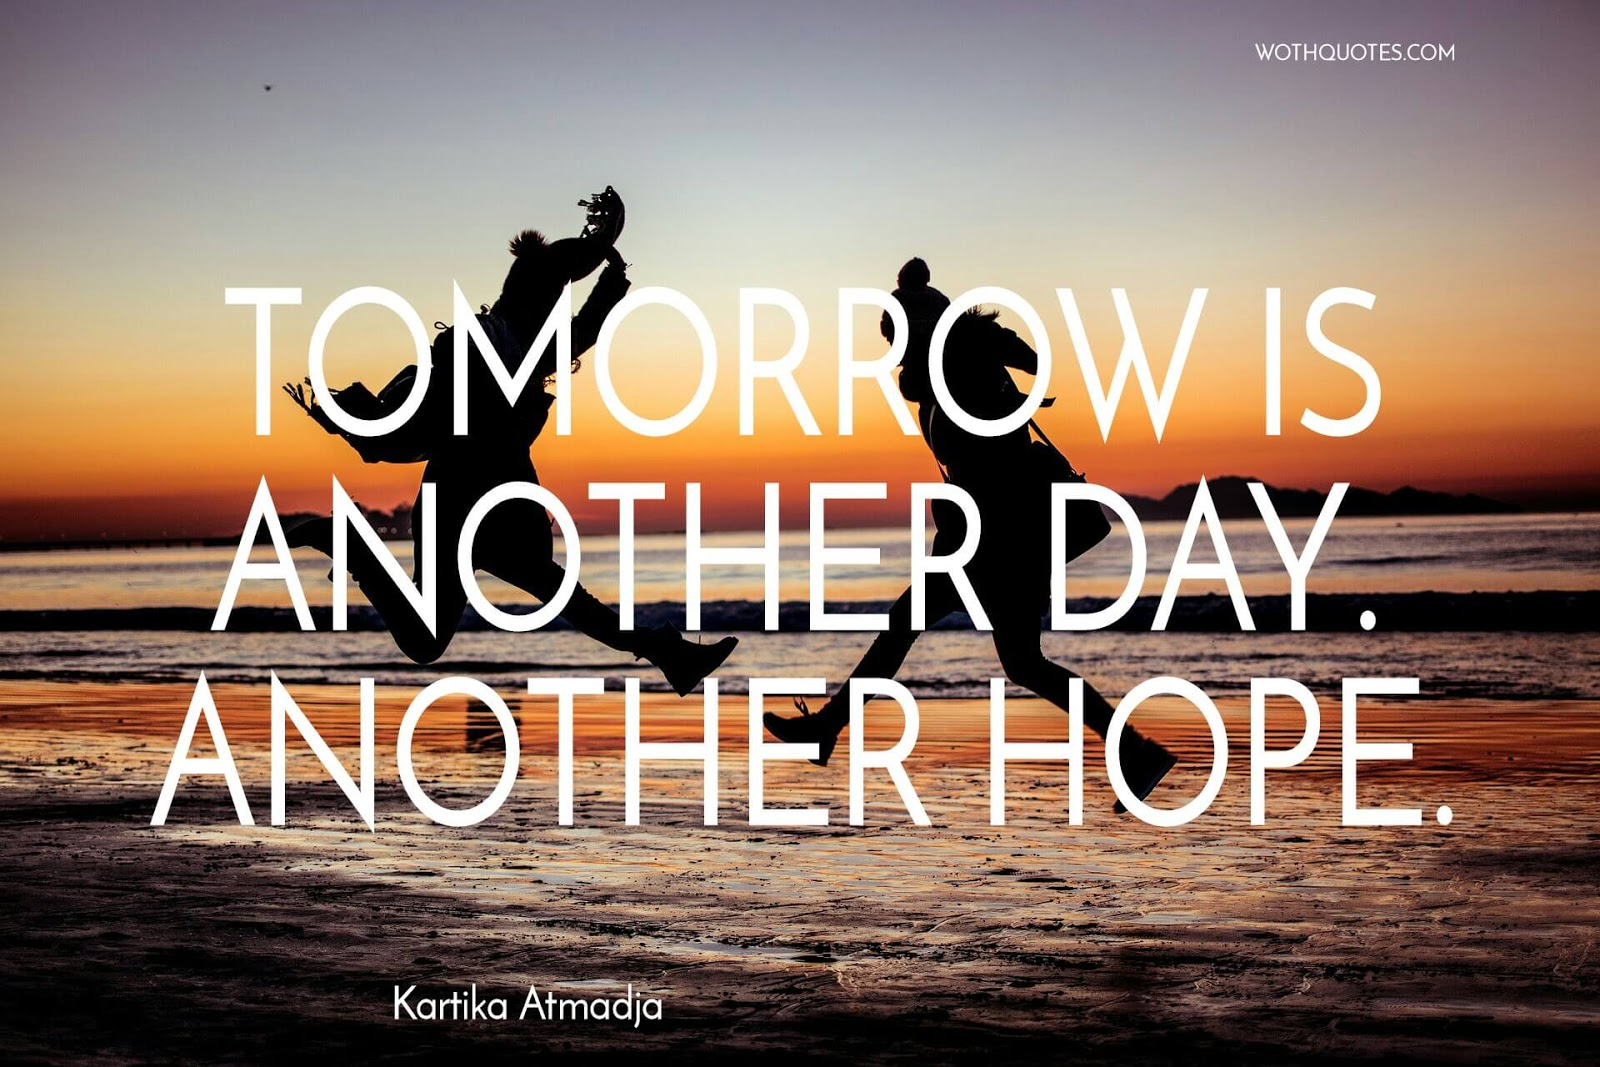 Tomorrow Quotes Wothquotes Collection